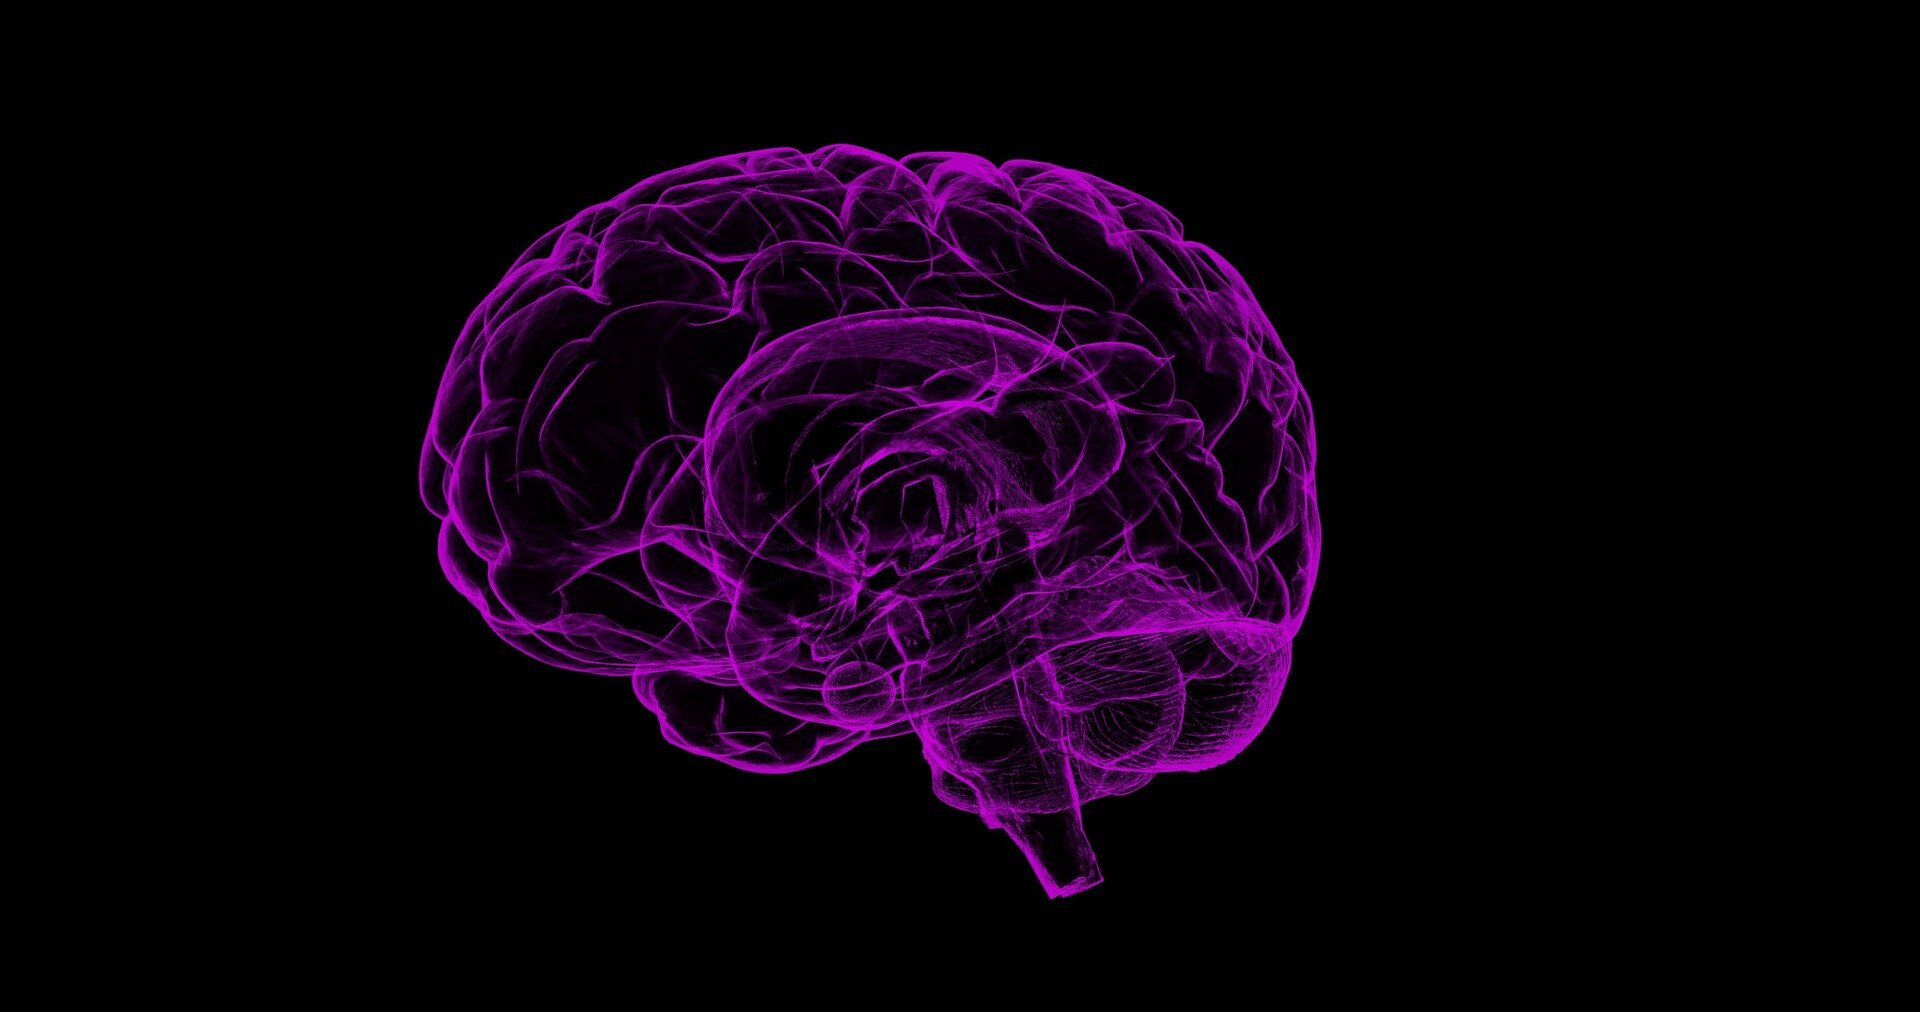 New device for detecting traumatic brain injury at the point of care